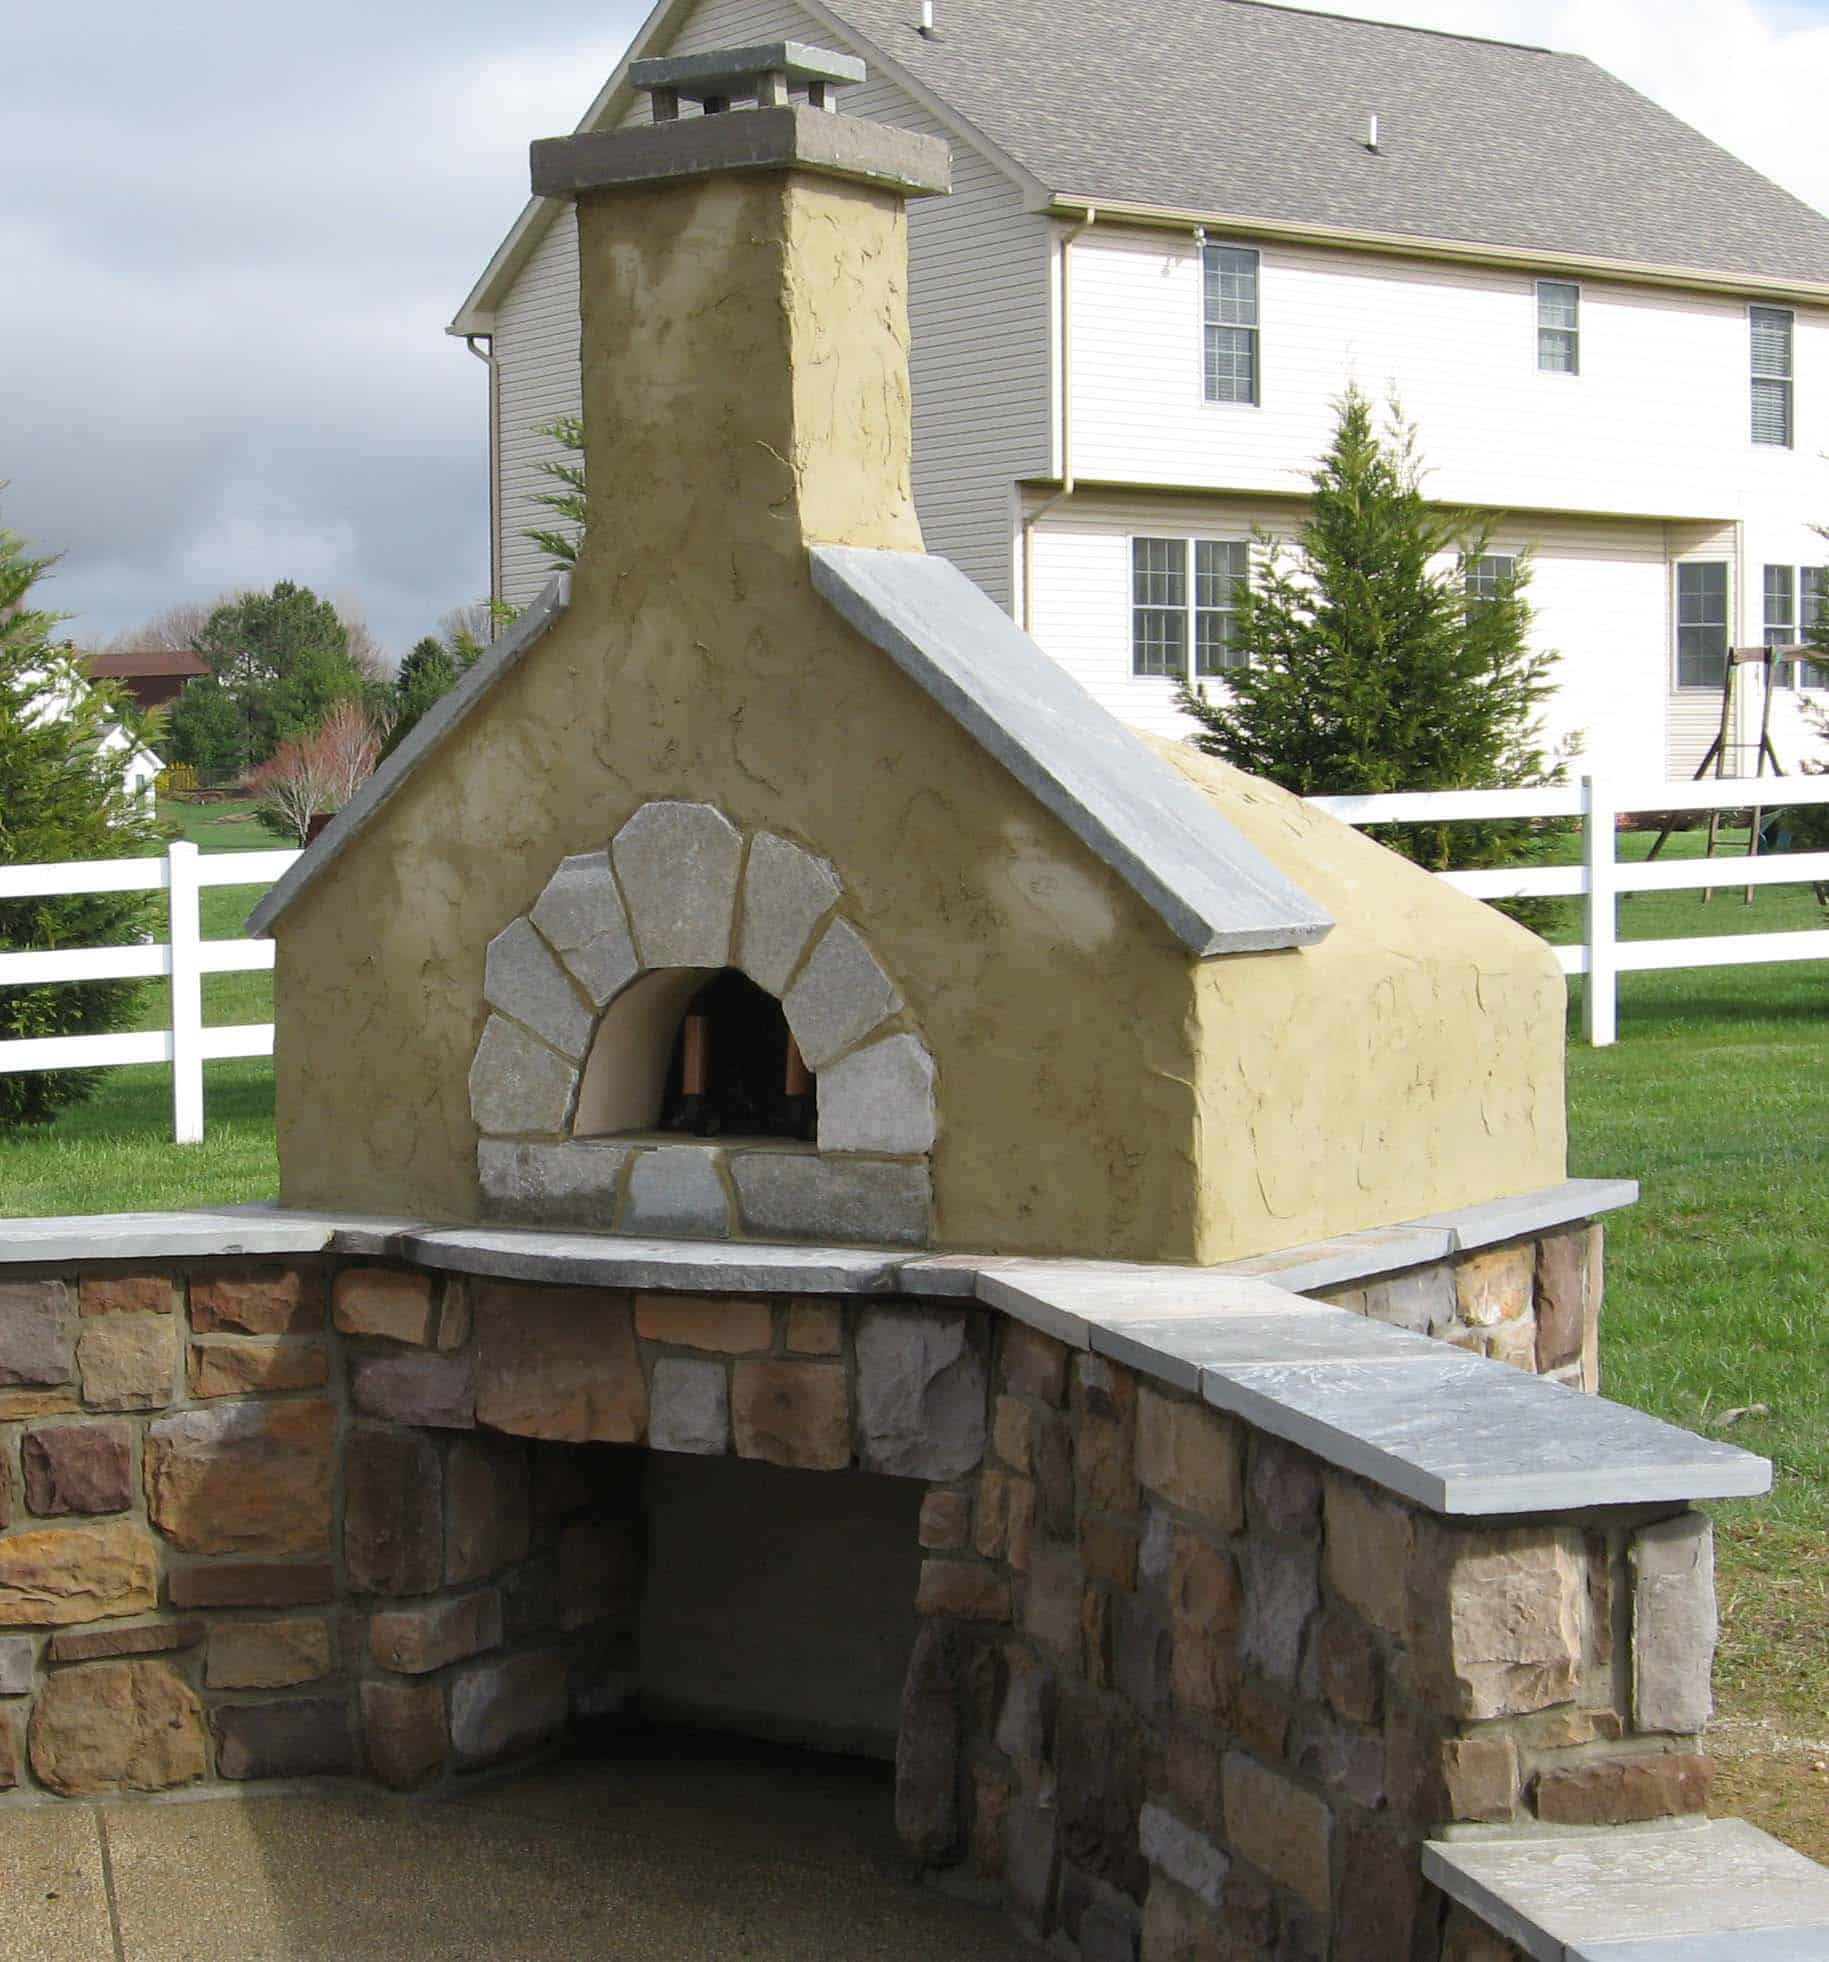 274 Stucco and Stone Outdoor Oven